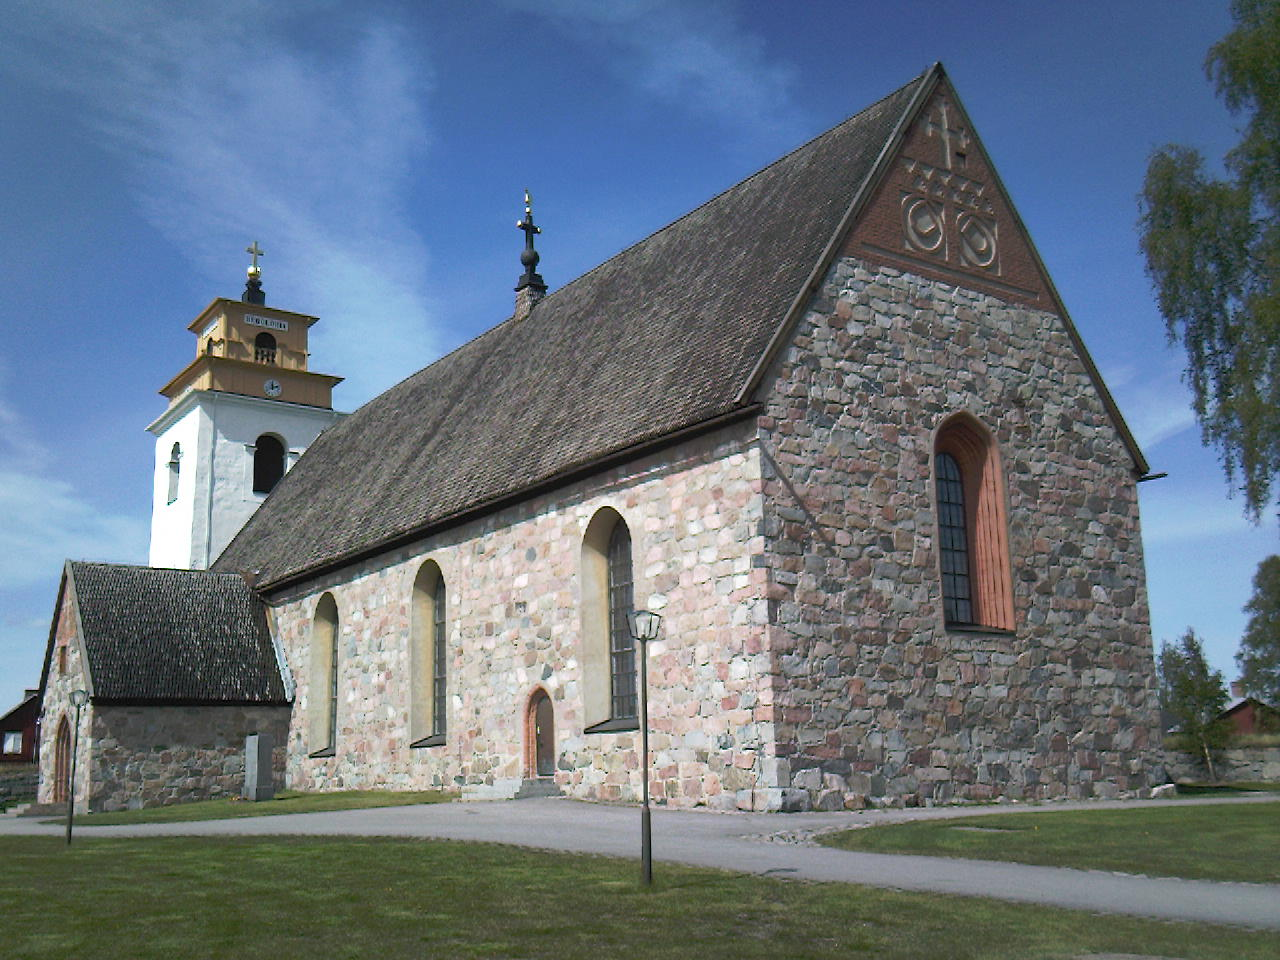 Church in Gammelstad, Lulea